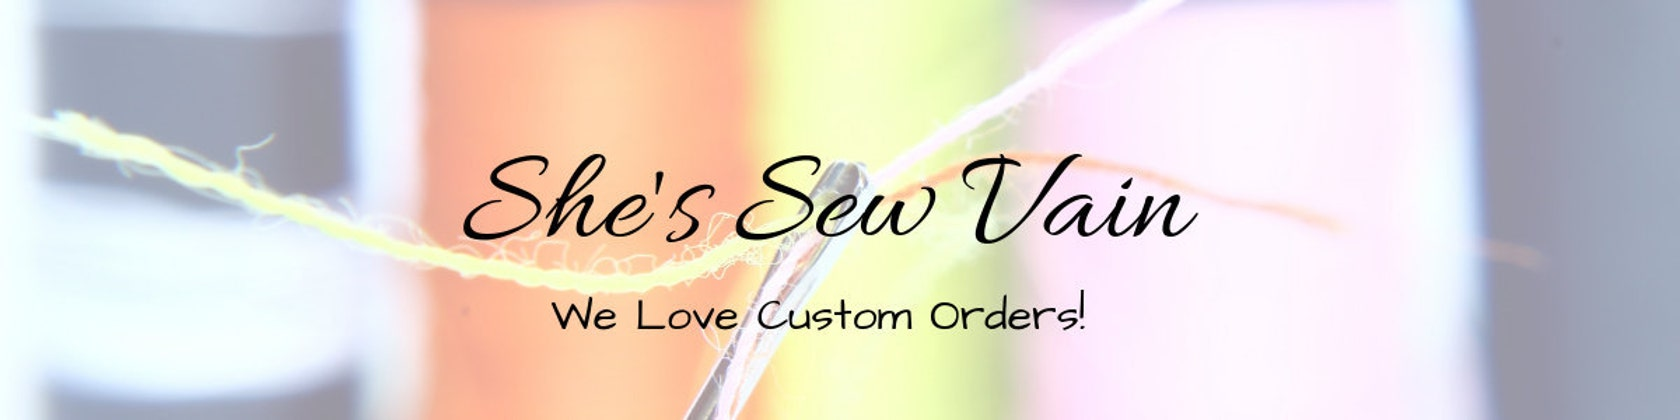 2d18ec20f9e She s Sew Vain Custom Embroidery and Monogramming by ShesSewVain